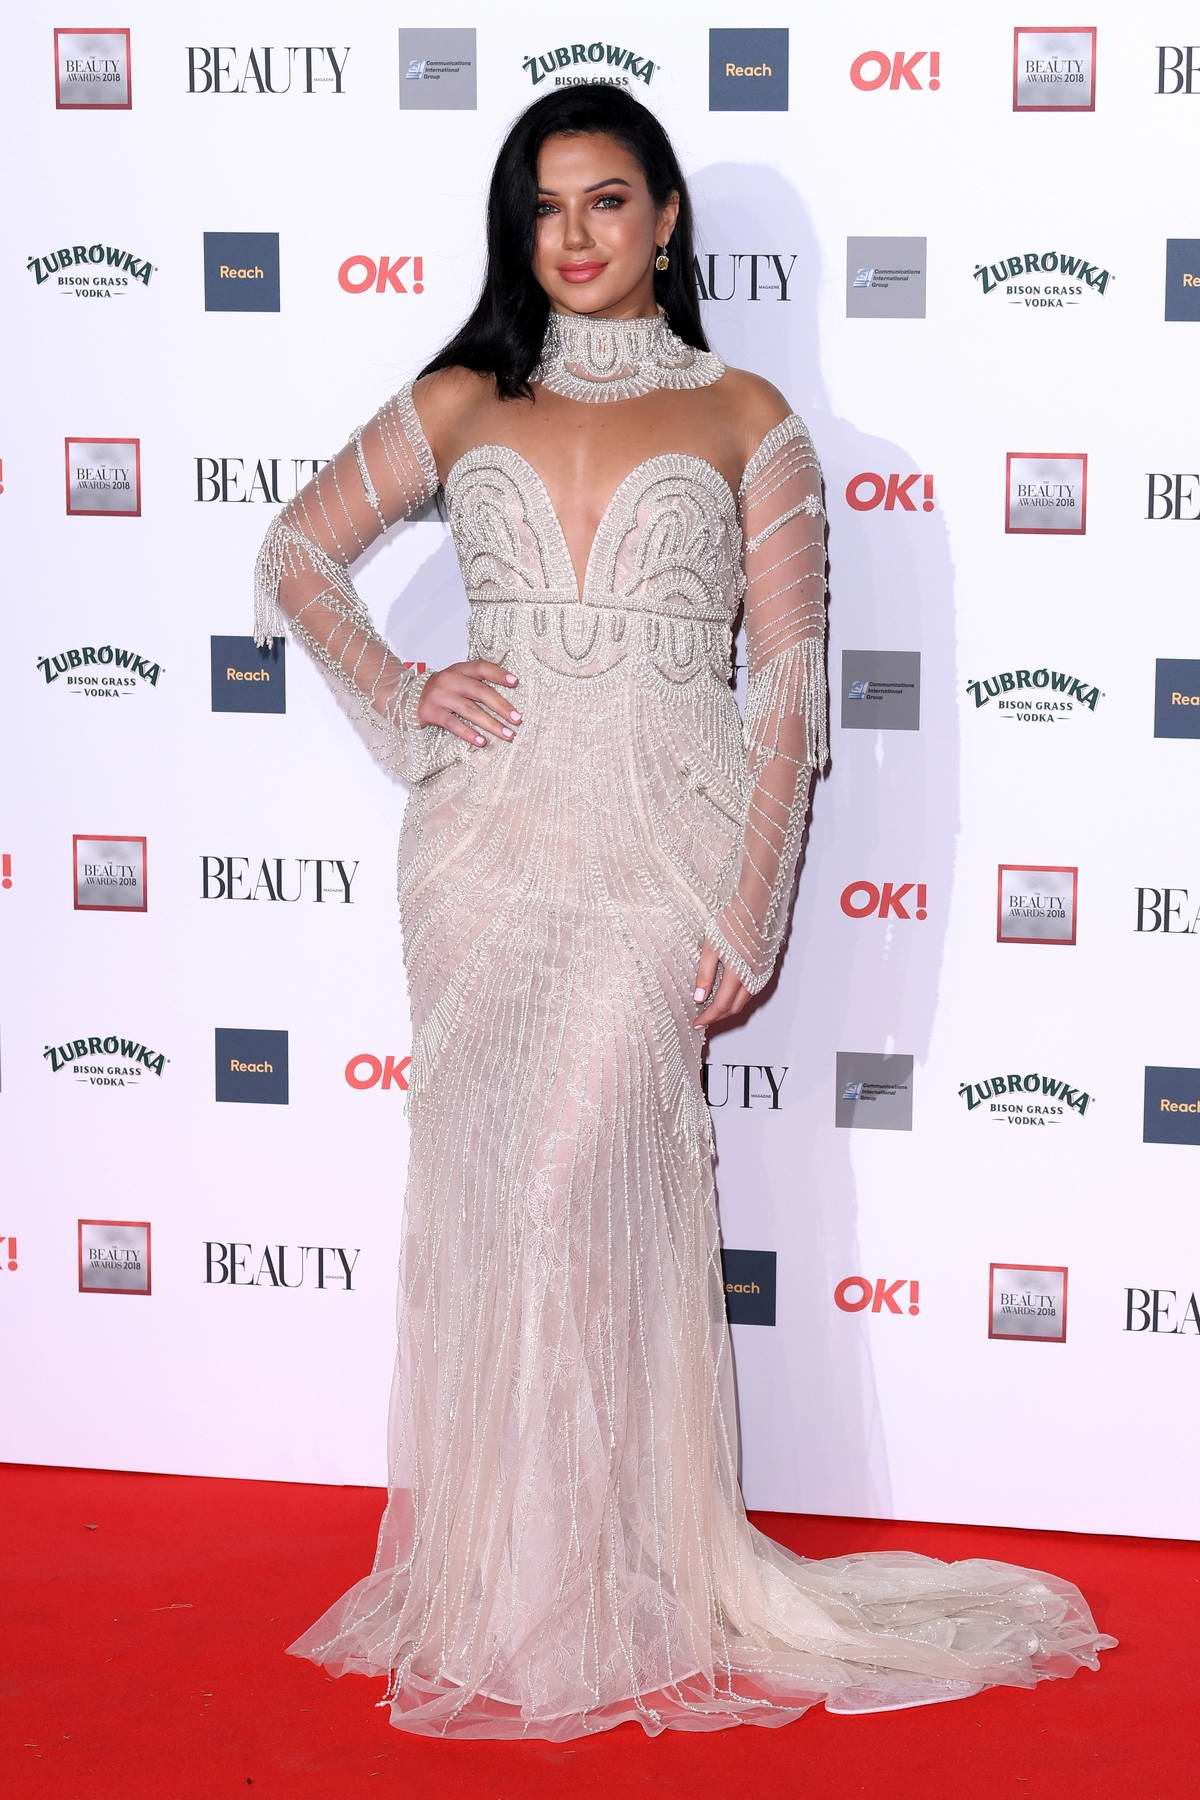 Alexandra Cane attends the OK! Beauty Awards at Park Plaza Westminster Bridge in London, UK